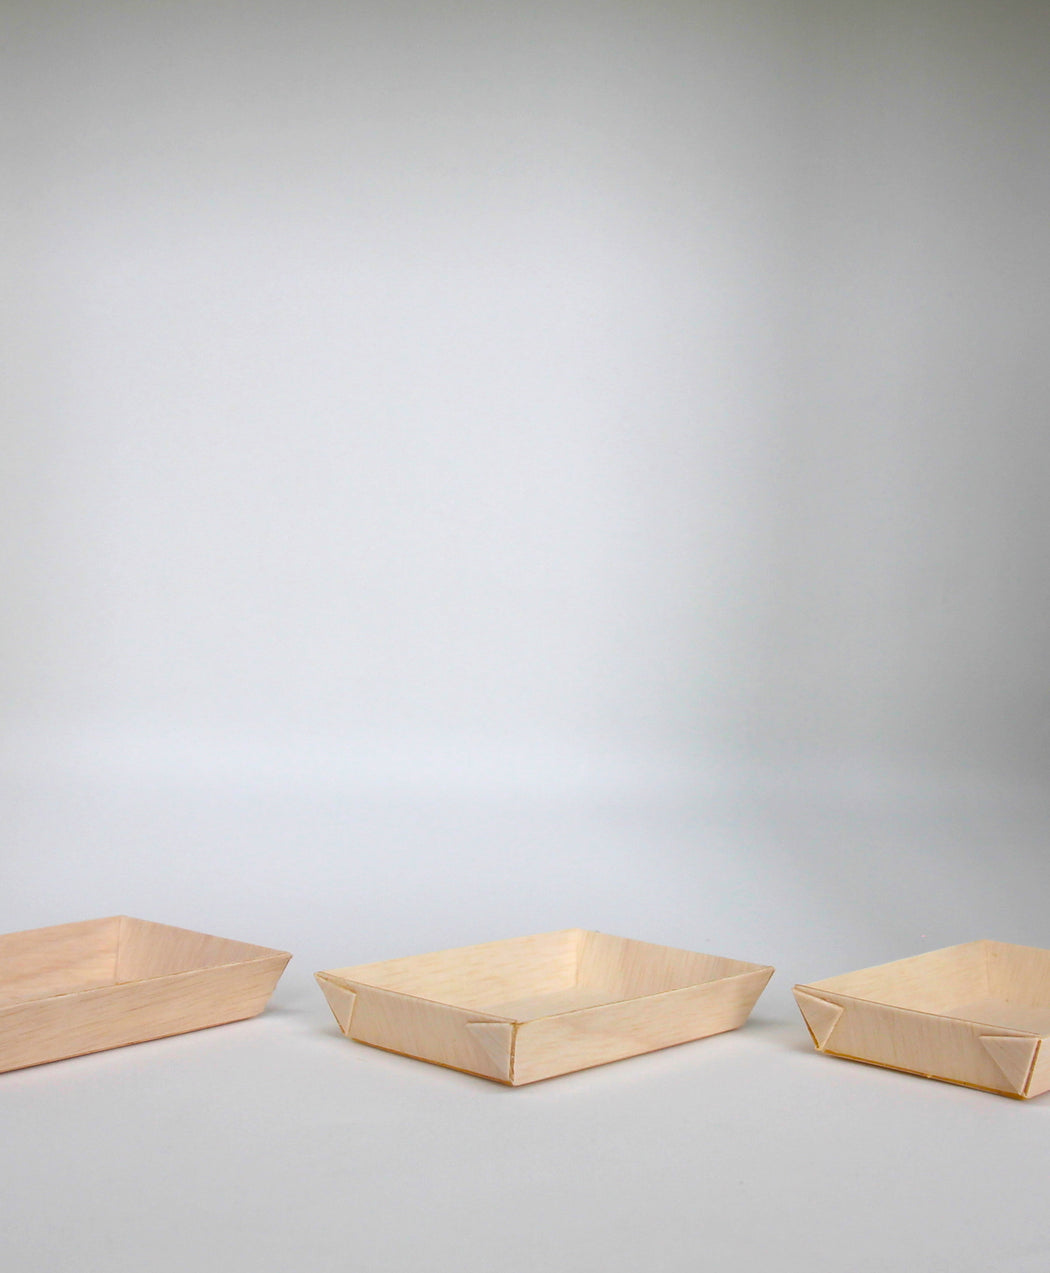 Wooden Appetizer Small Plate (Set of 12)